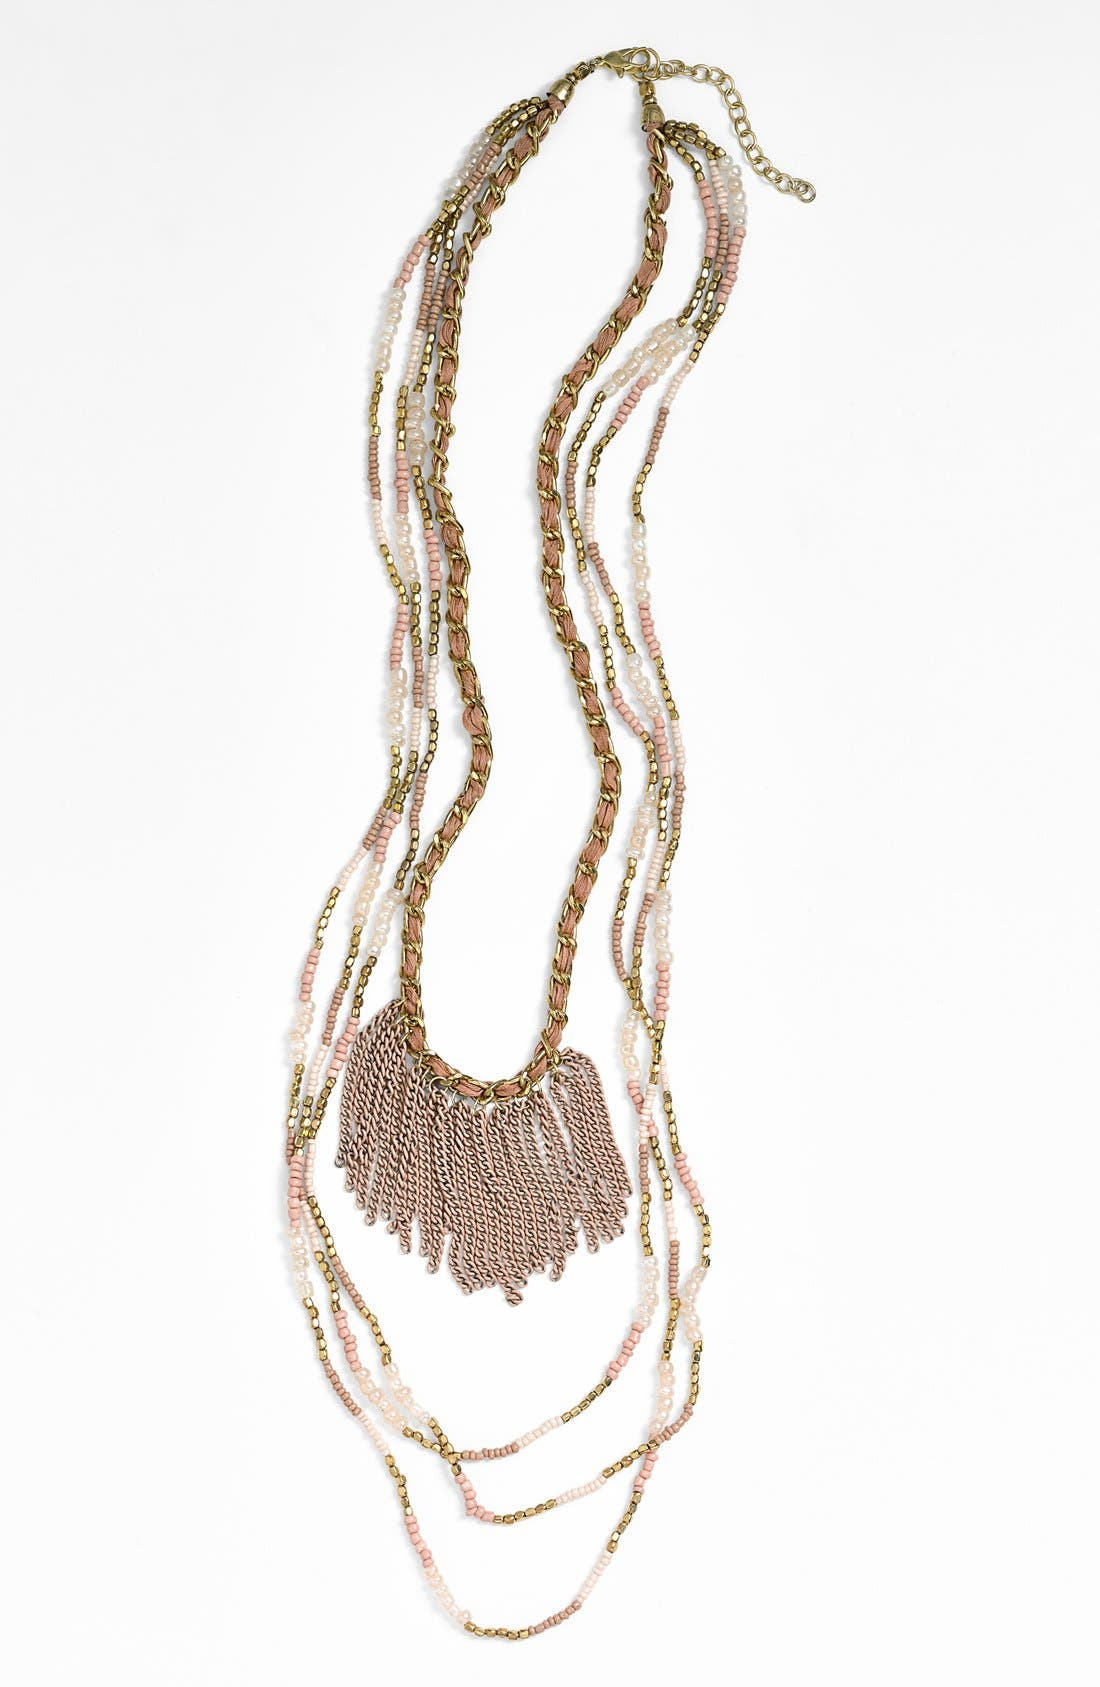 Main Image - Stephan & Co. Beaded Fringed Layered Chain Necklace (Juniors)